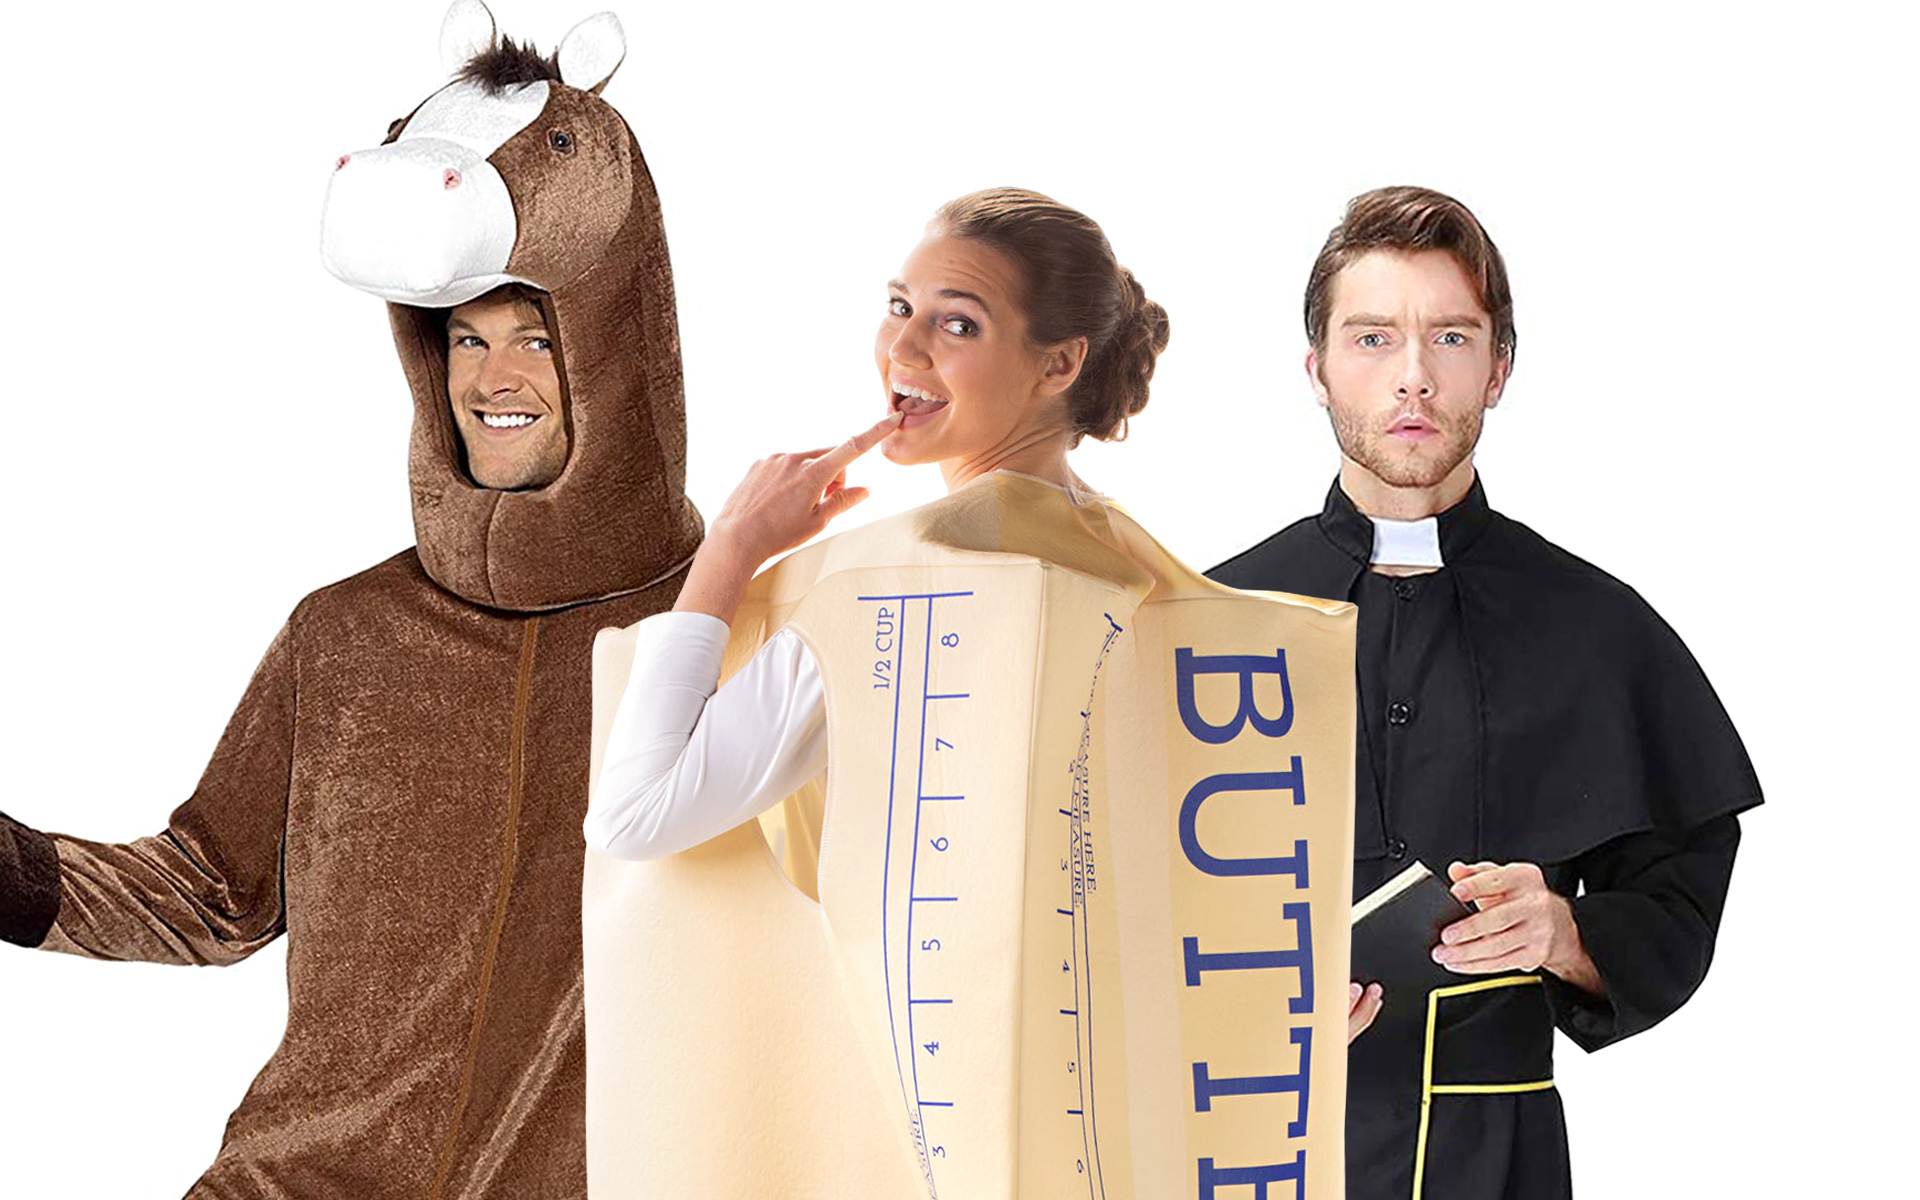 Halloween Costume Ideas Inspired by Song Titles